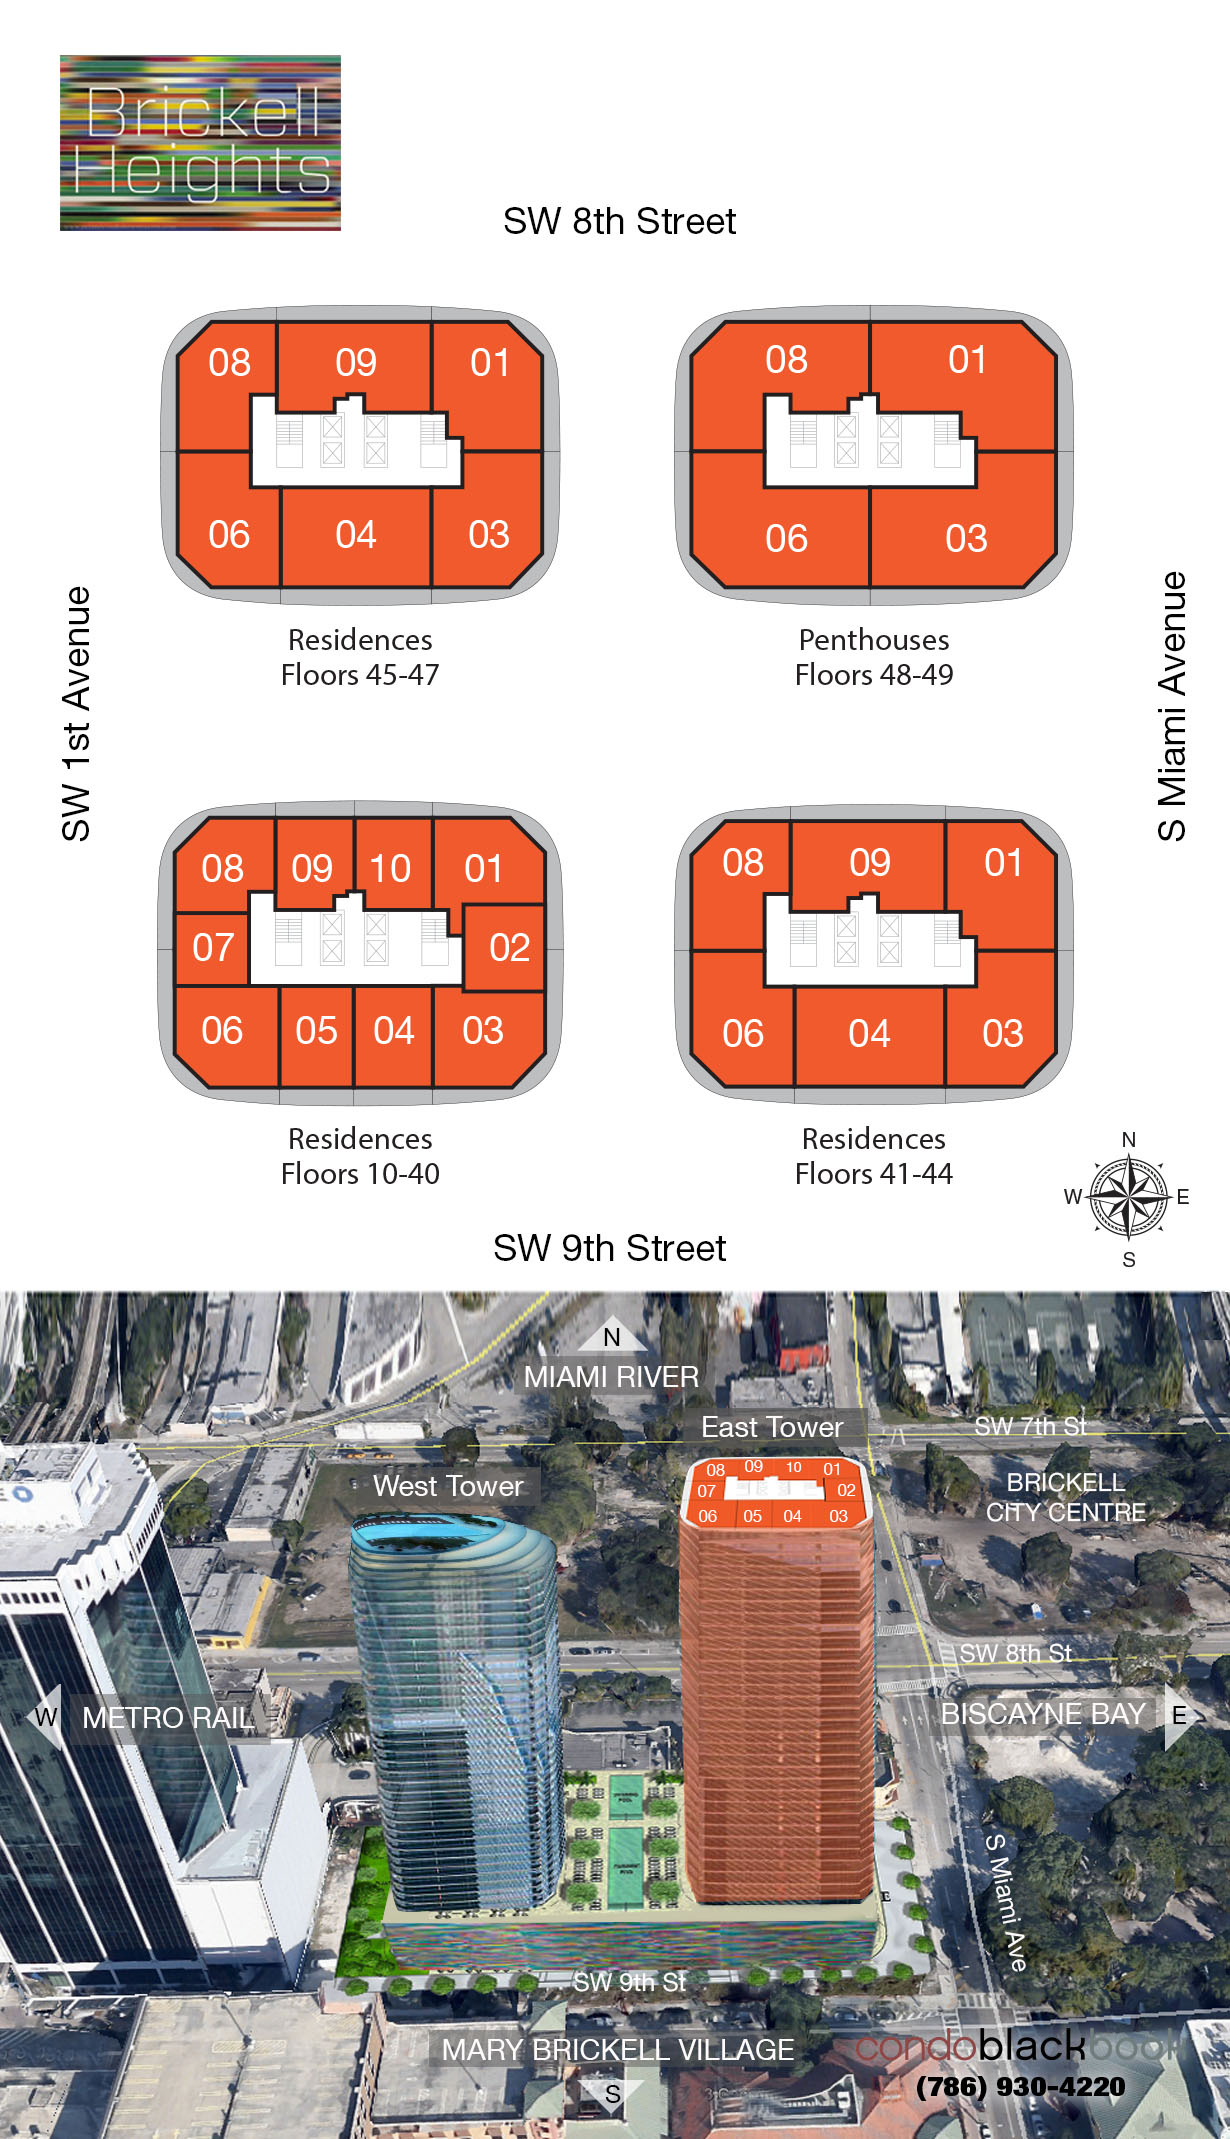 Brickell Heights East Tower floorplan and site plan